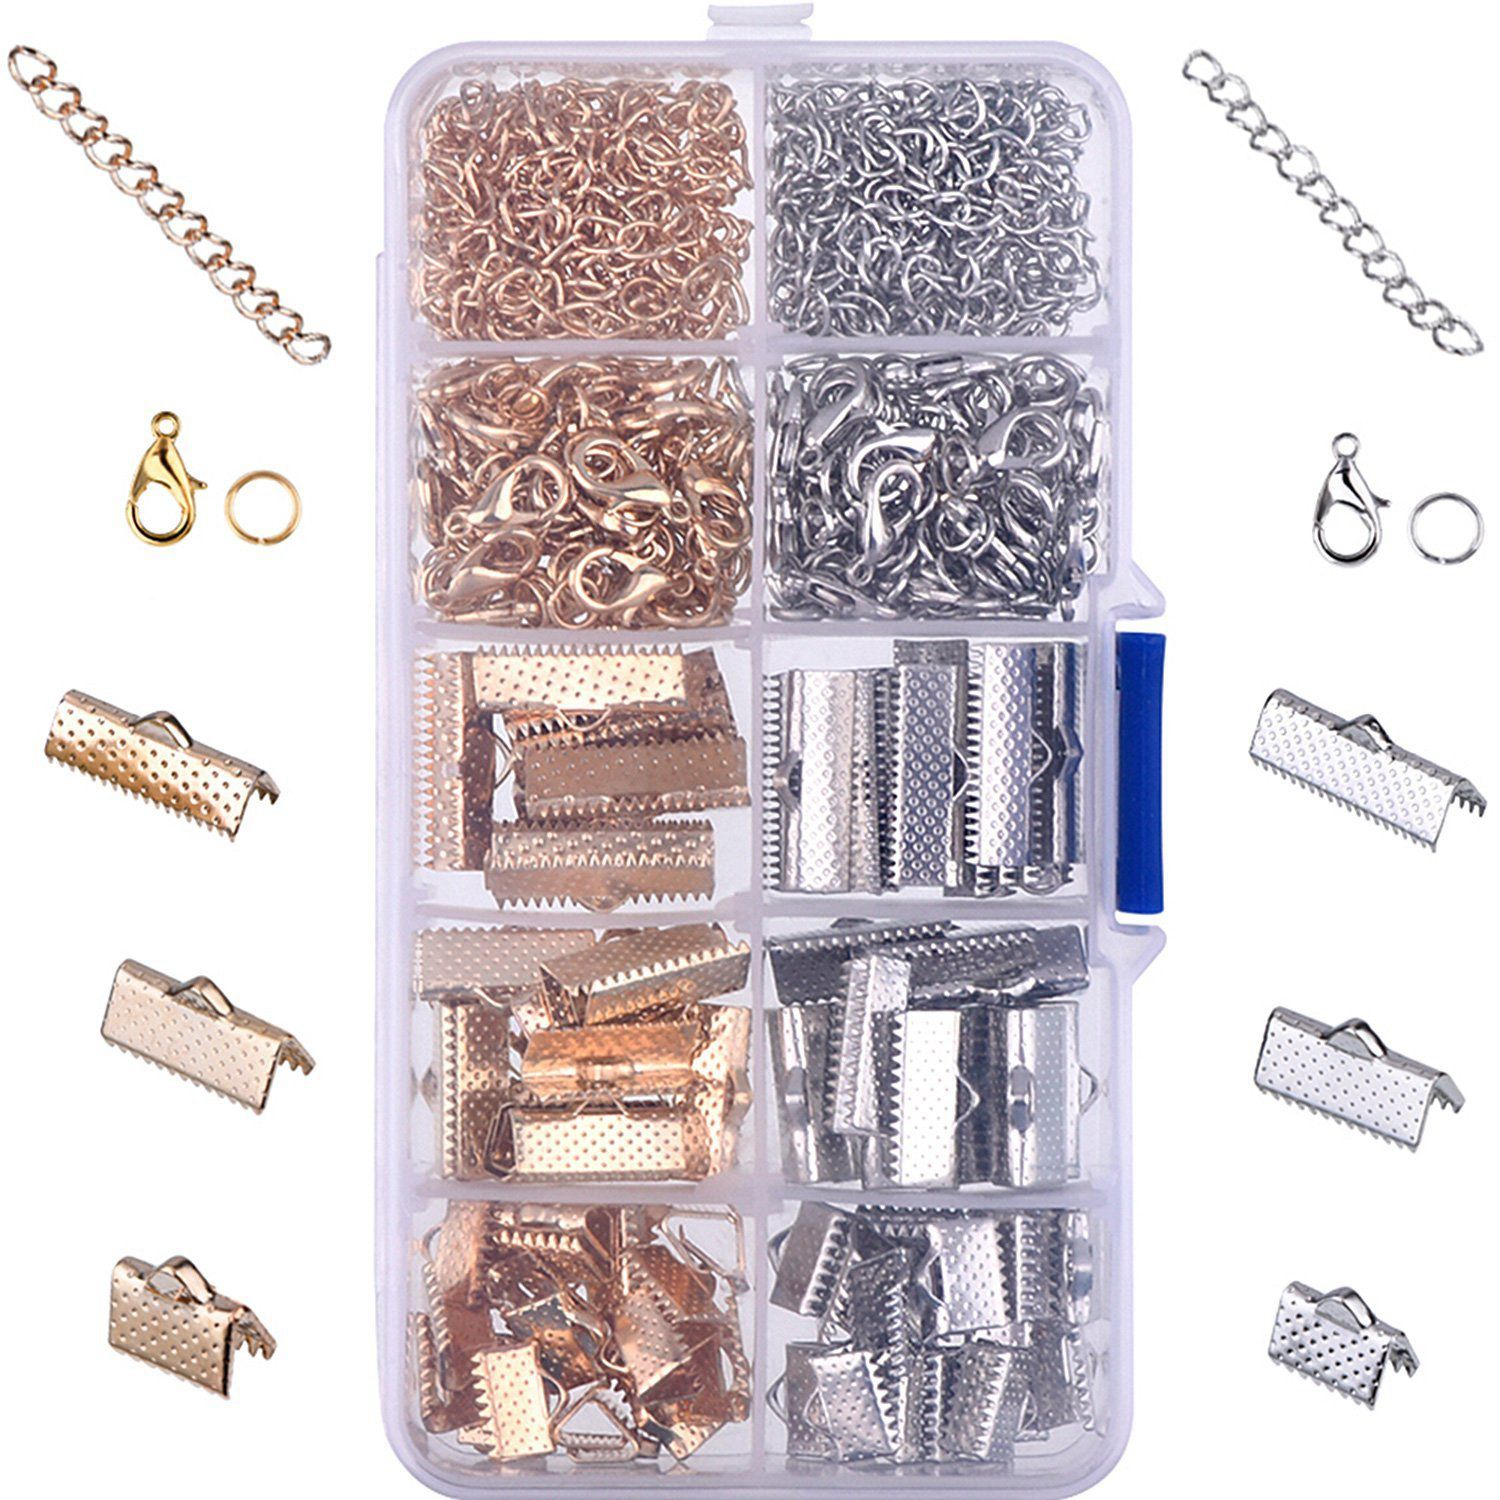 12mm Clasps /& Silver Glass Drop 6 sets Silver Plated Crimp Ends for 16mm Ribbon